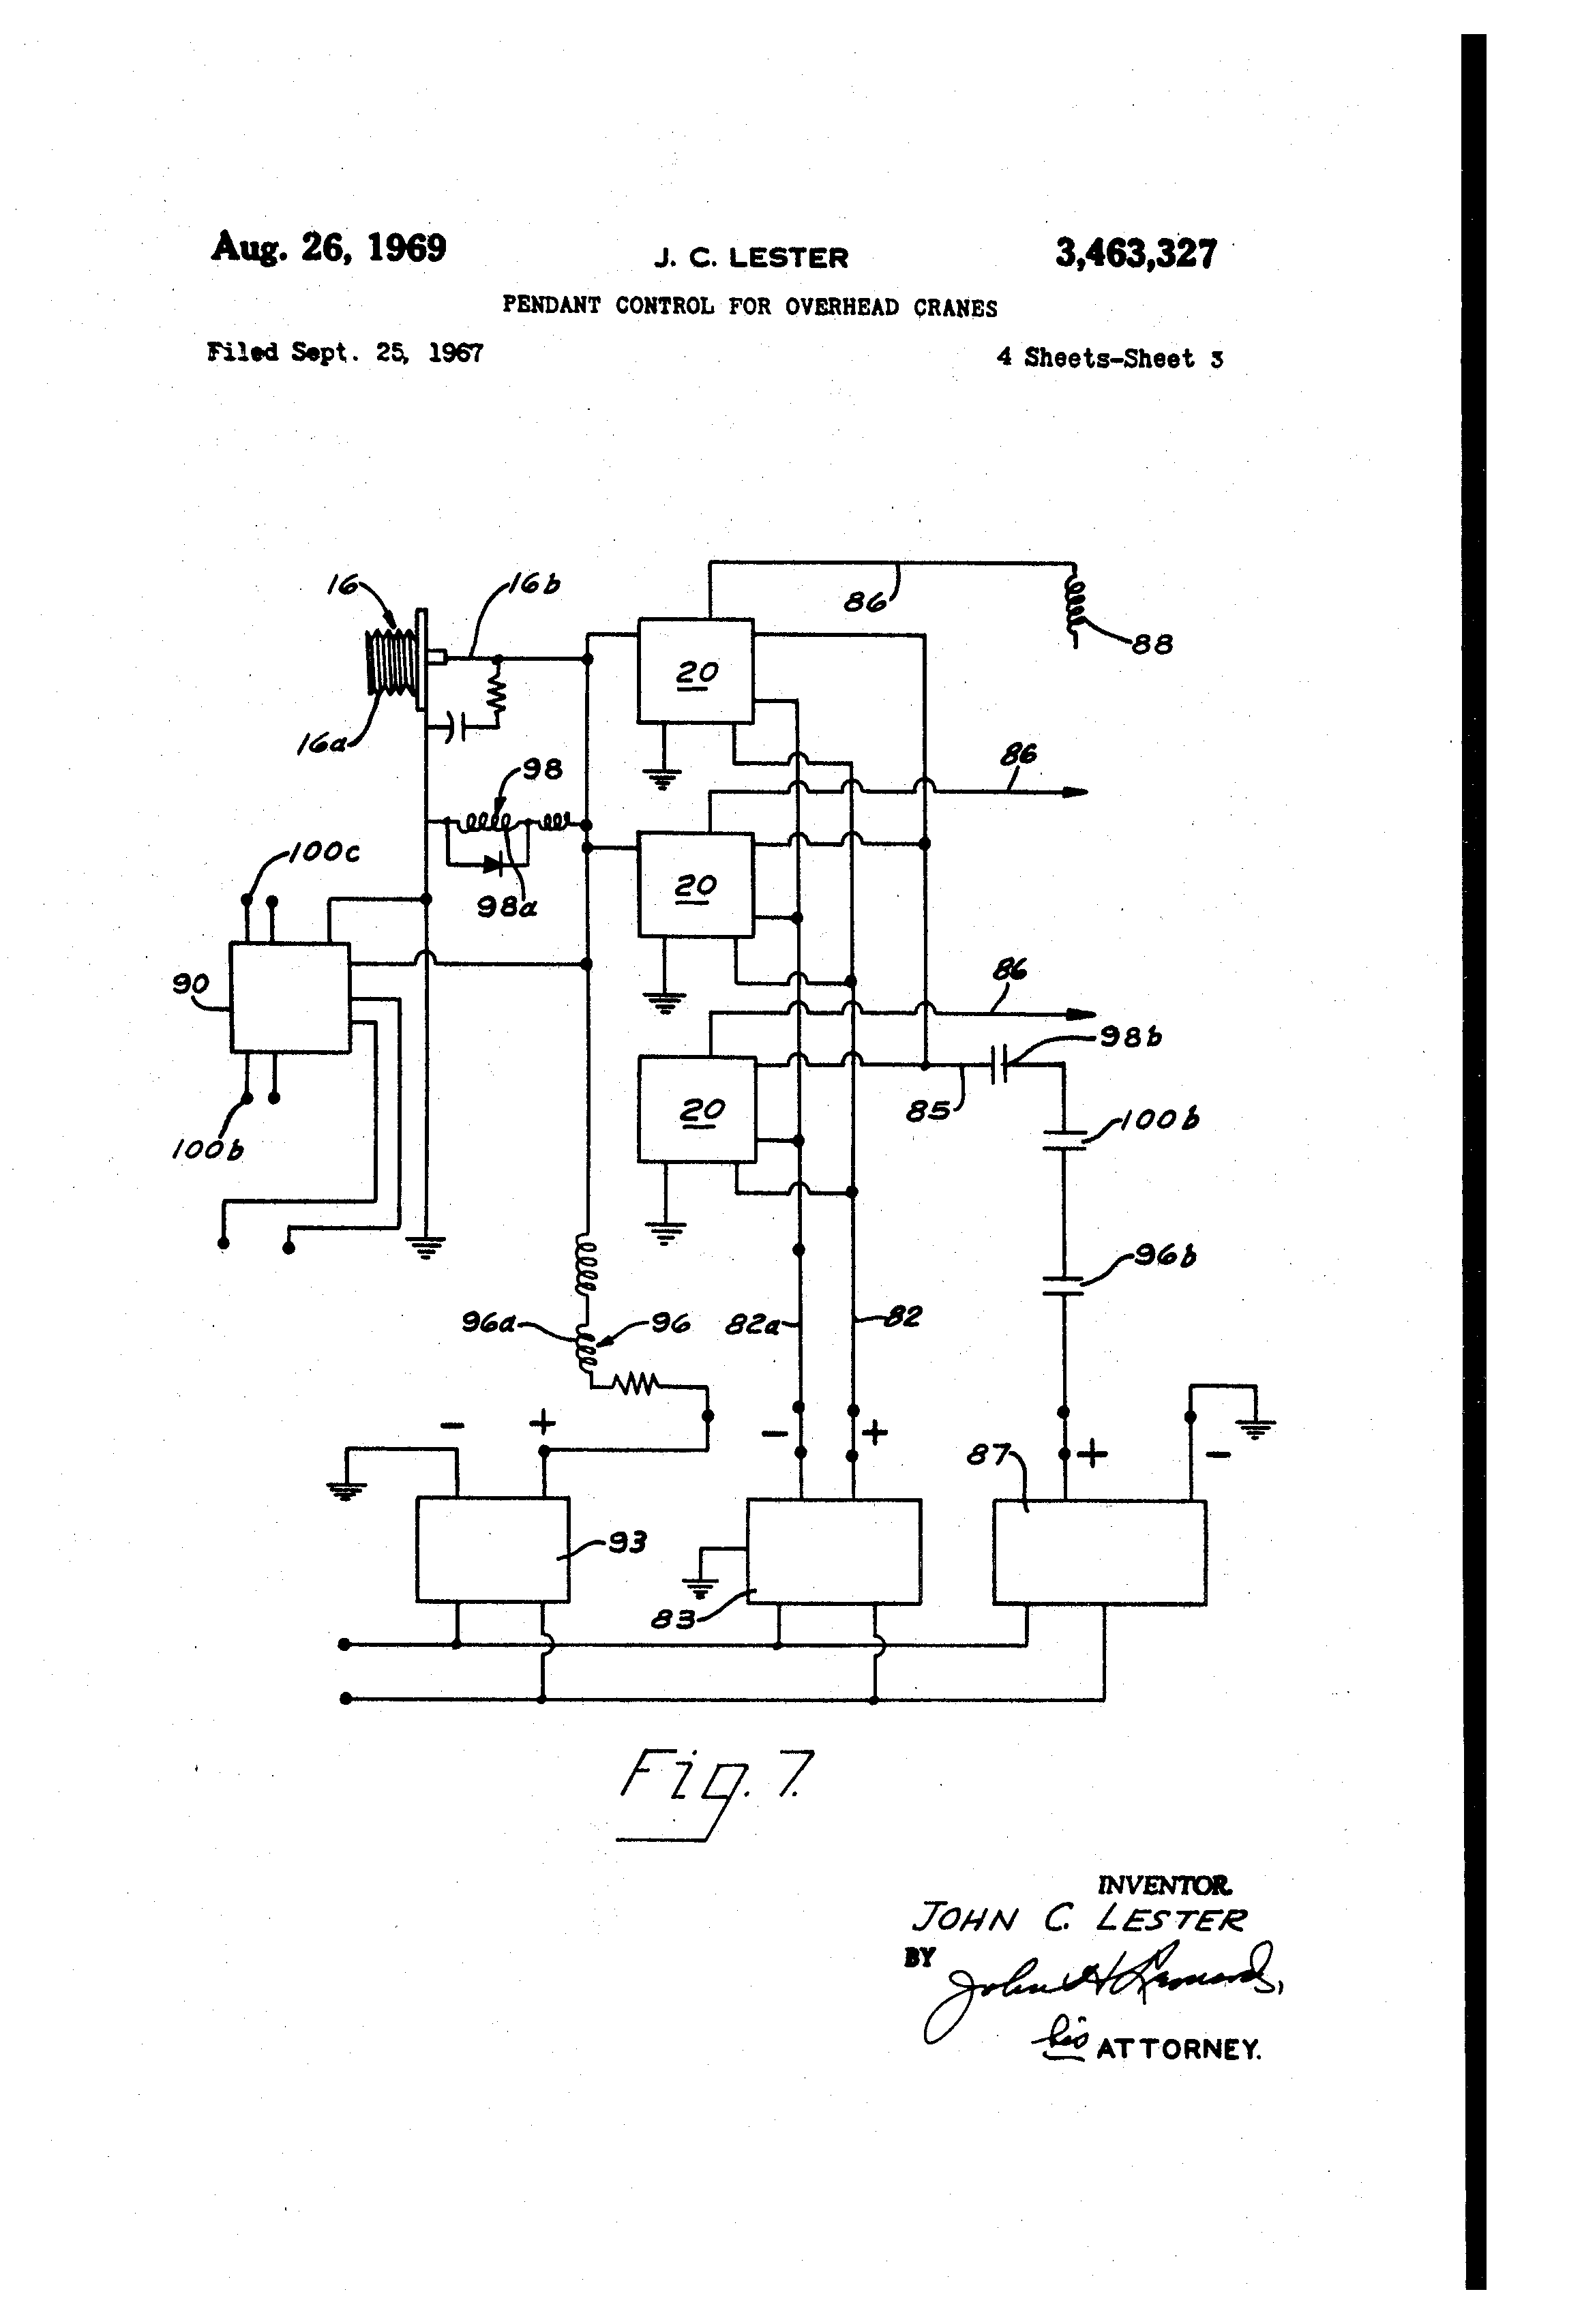 US3463327 2 patent us3463327 pendant control for overhead cranes google demag hoist wiring diagram at mifinder.co